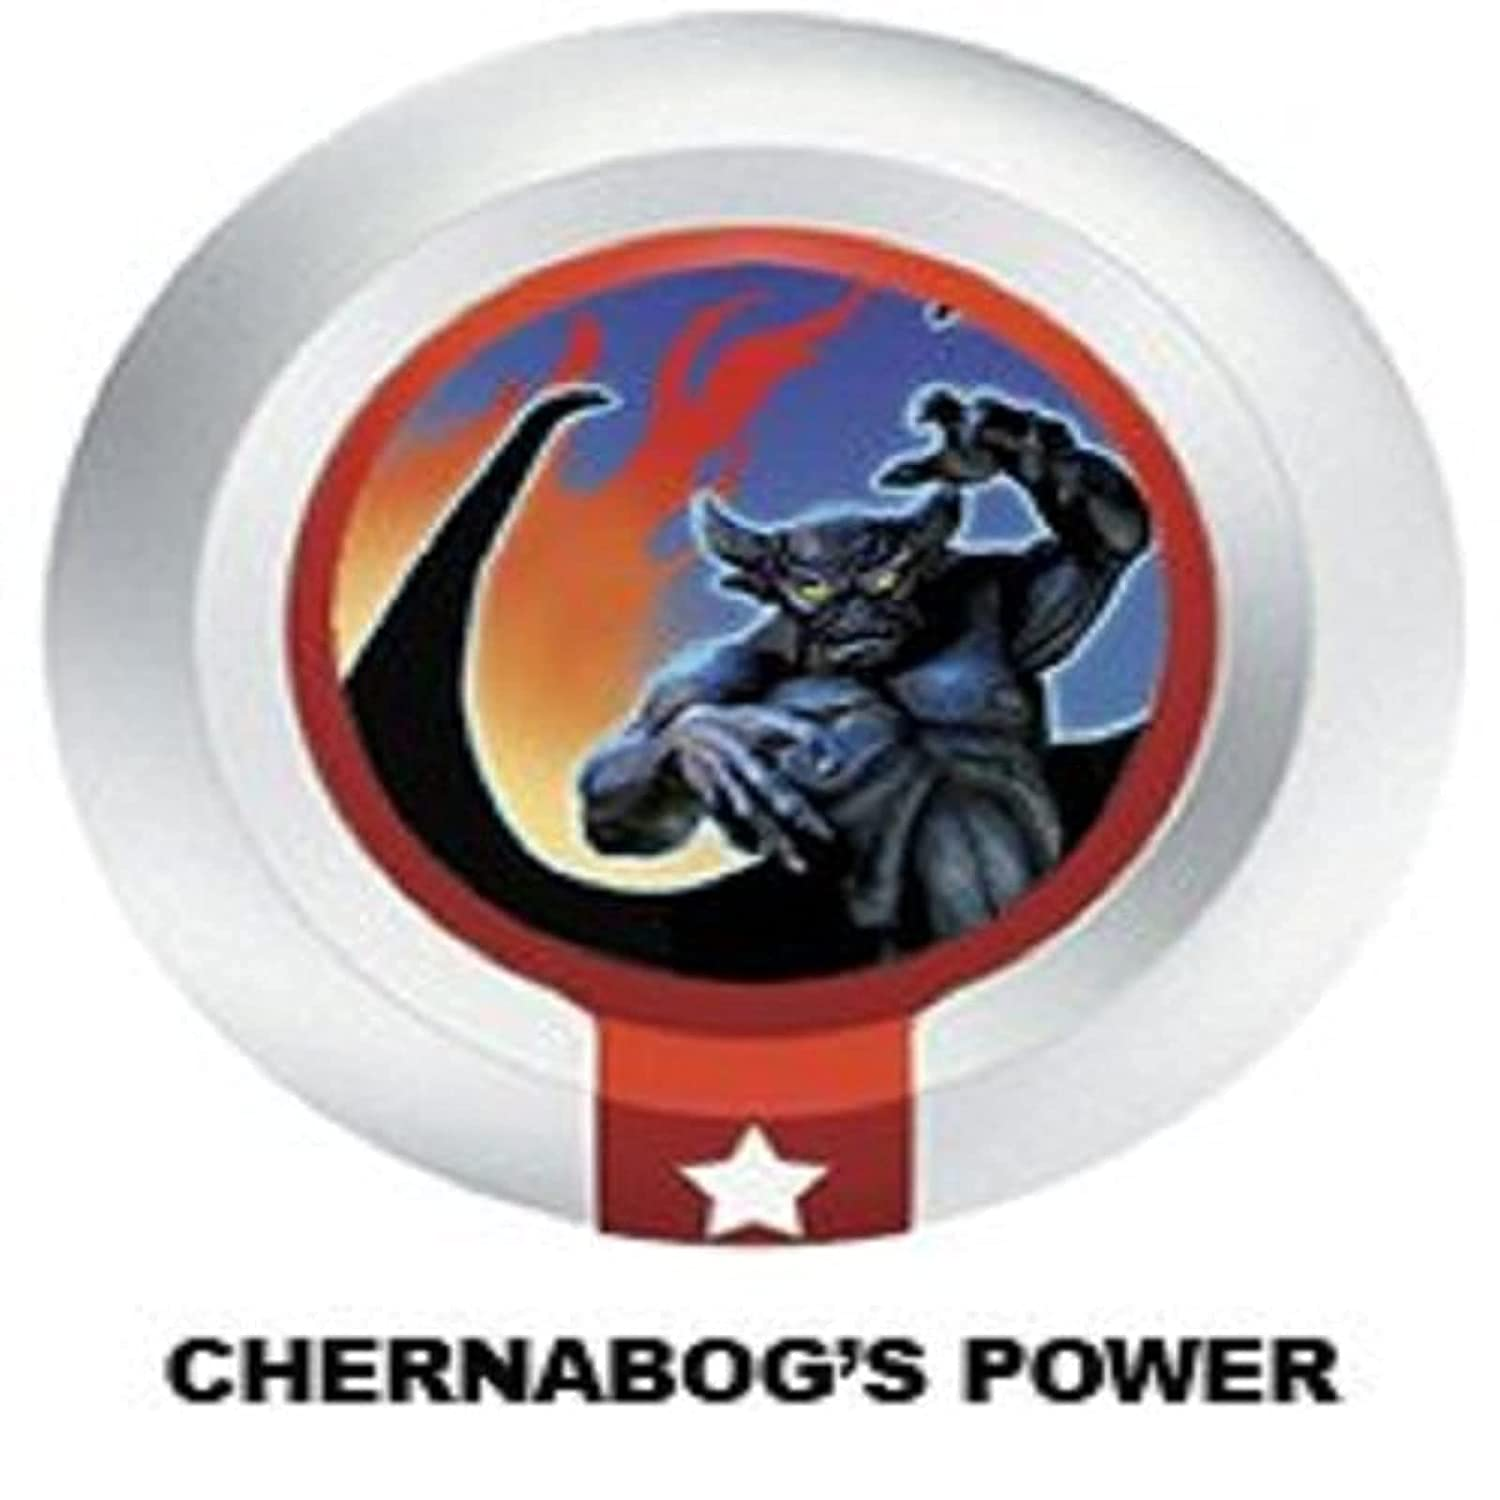 Disney National products Infinity Series 3 Power Deluxe Fant Disc Chernabog's from